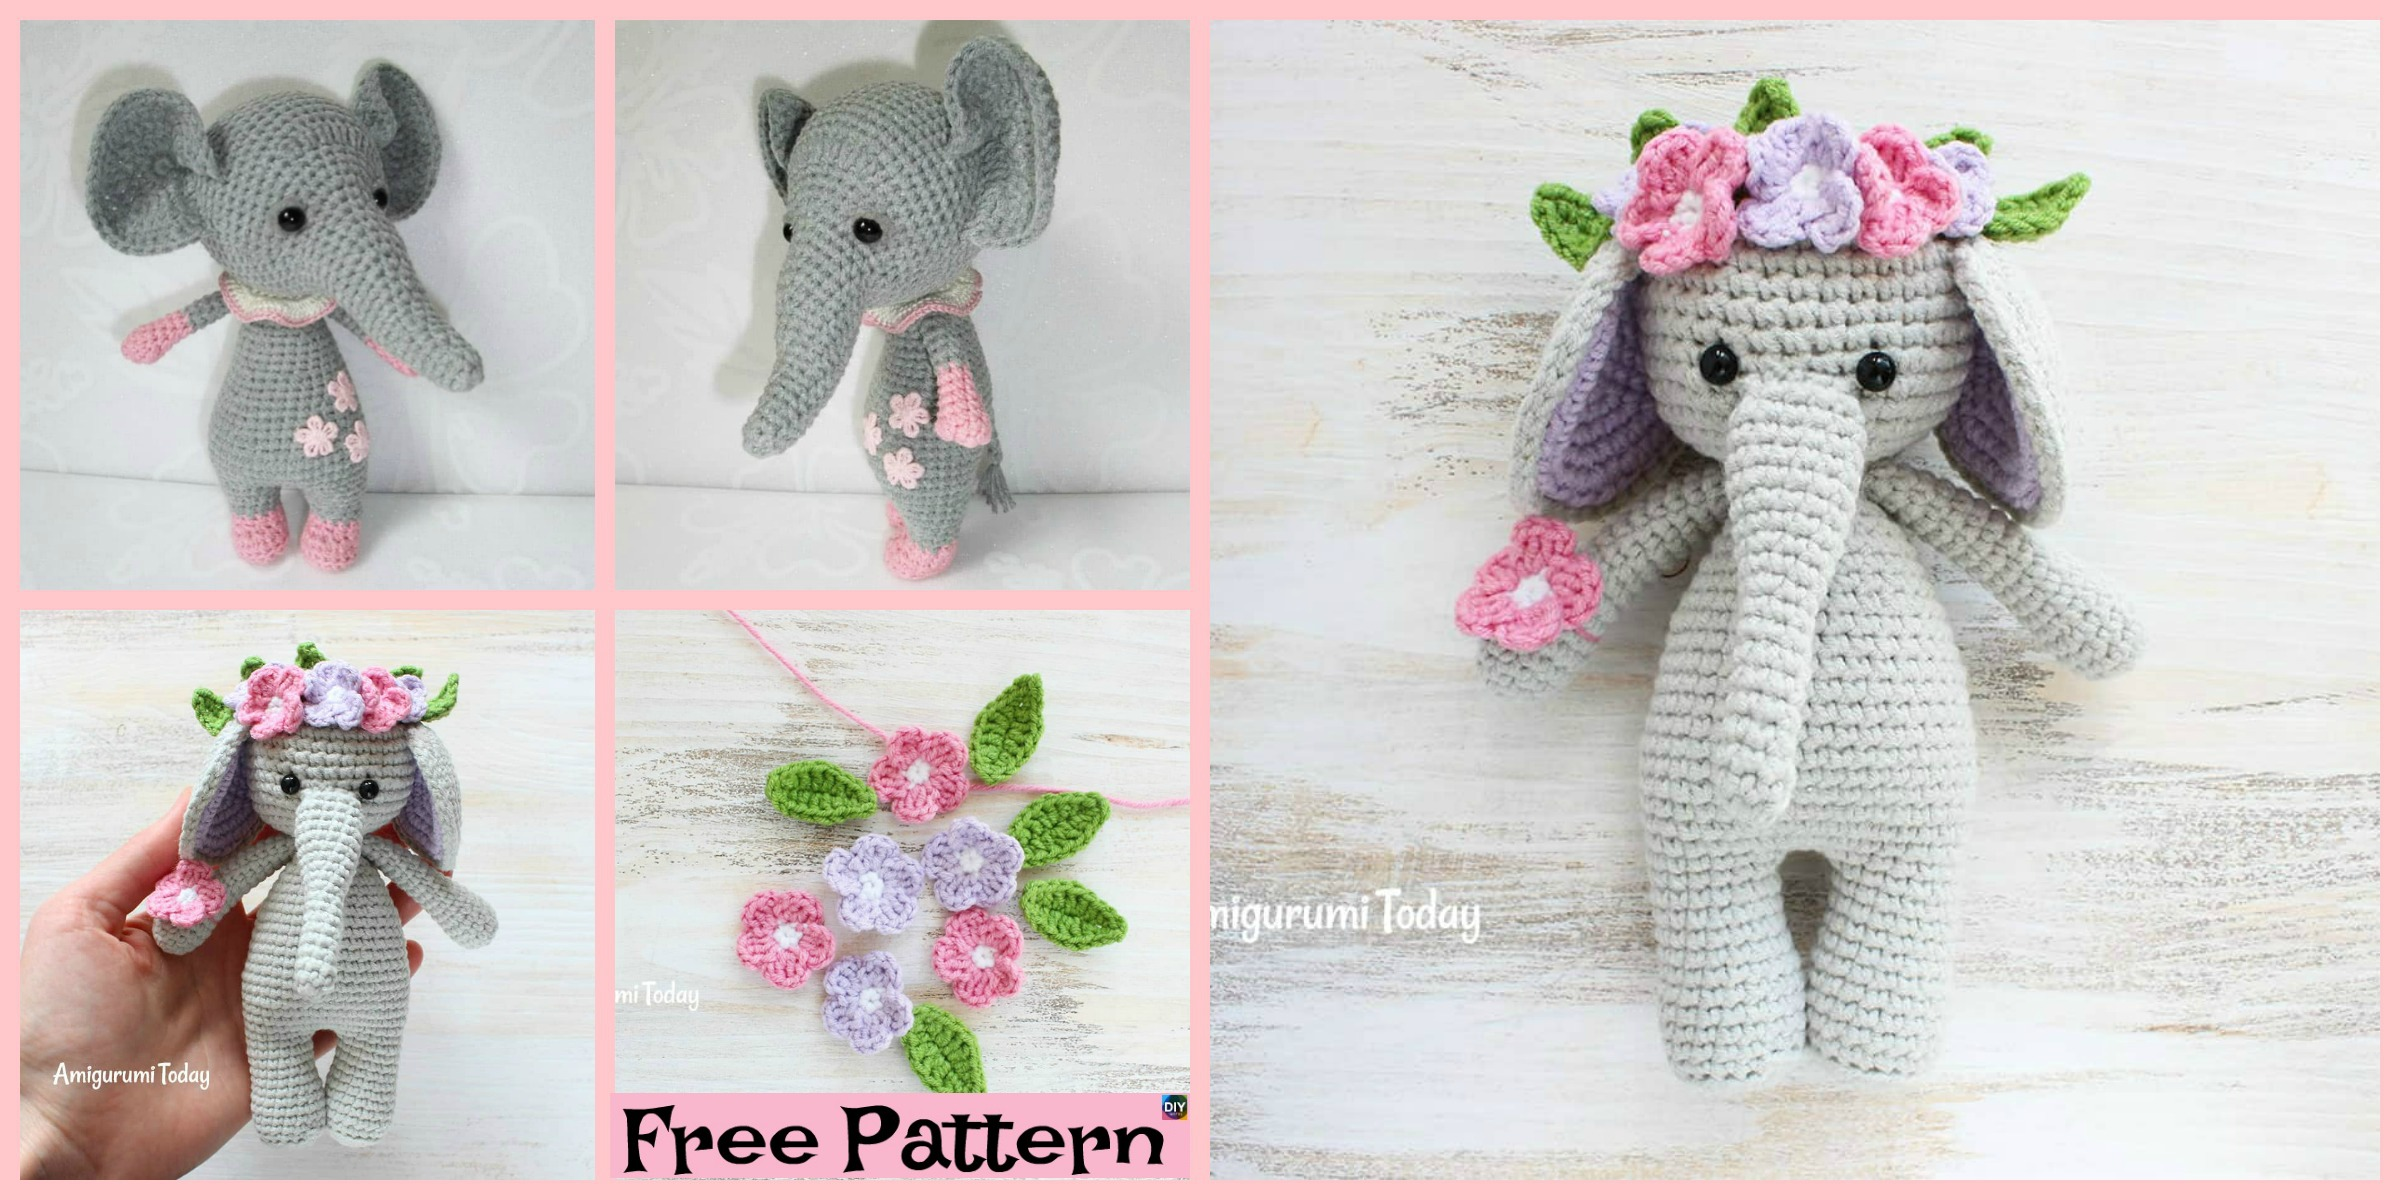 Pink crochet elephant pattern - Amigurumi Today | 1200x2400